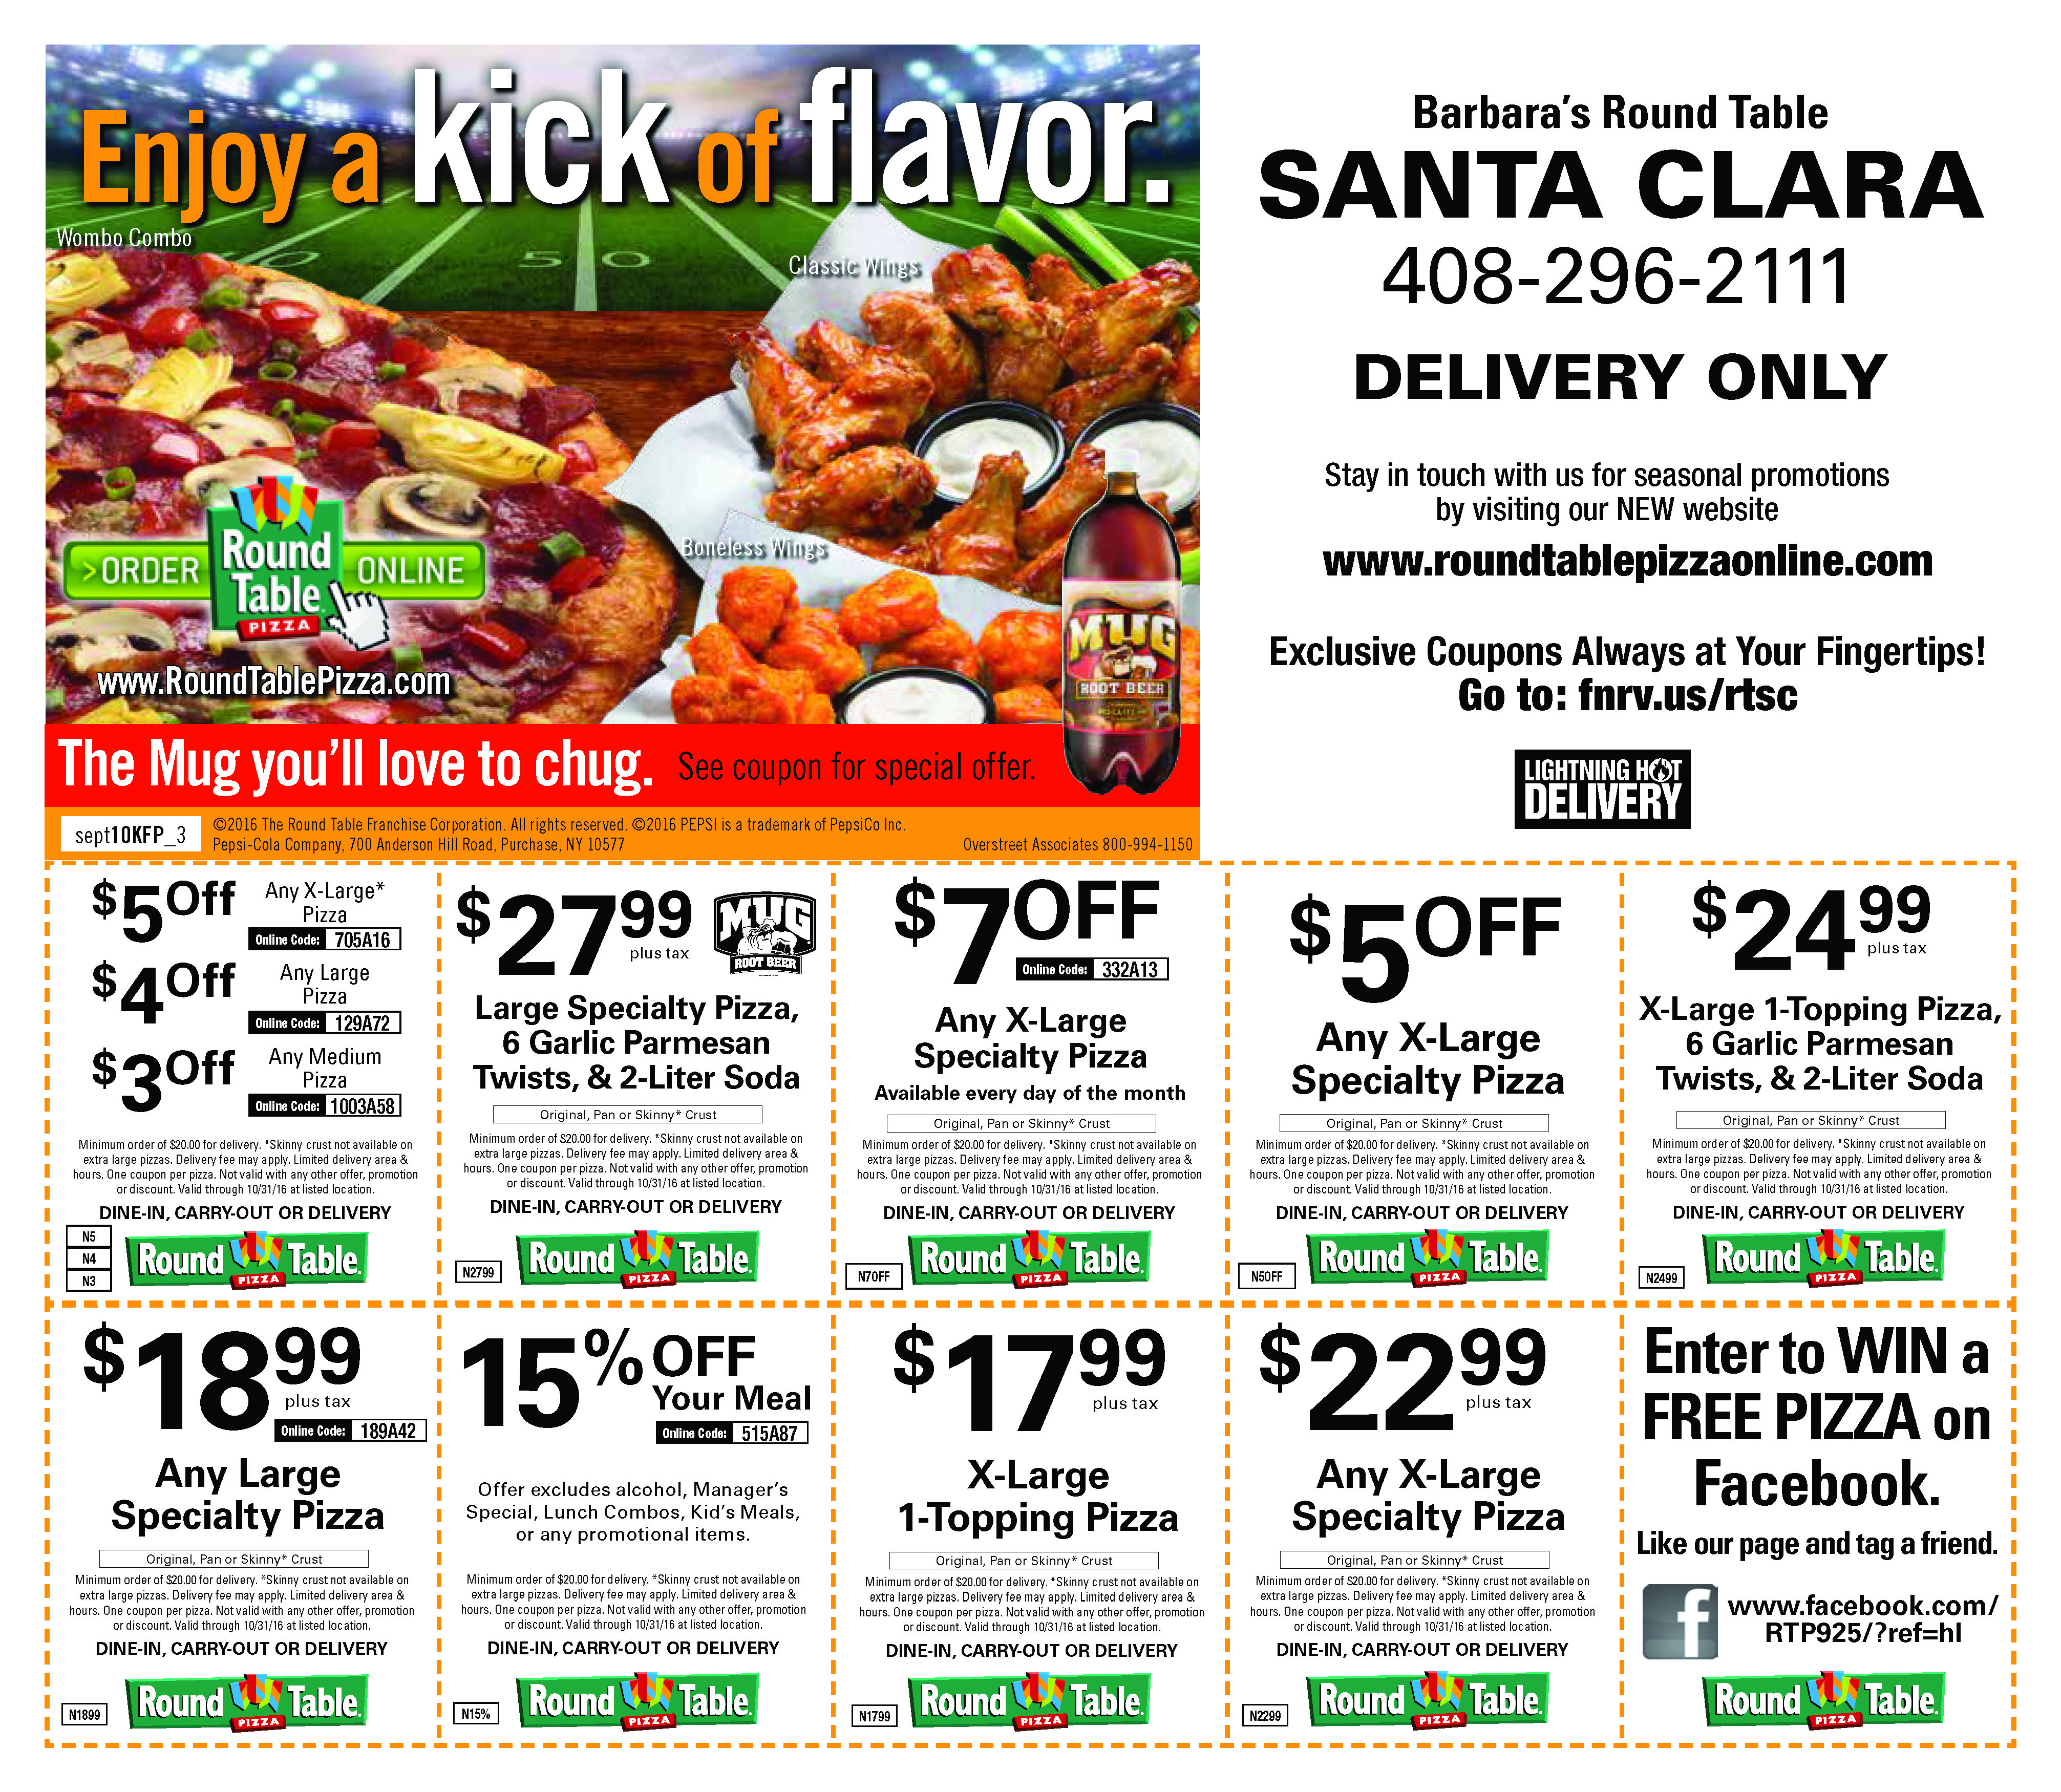 Round Table Coupon Online Order - Boundary Bathrooms Deals - Free Printable Round Table Pizza Coupons